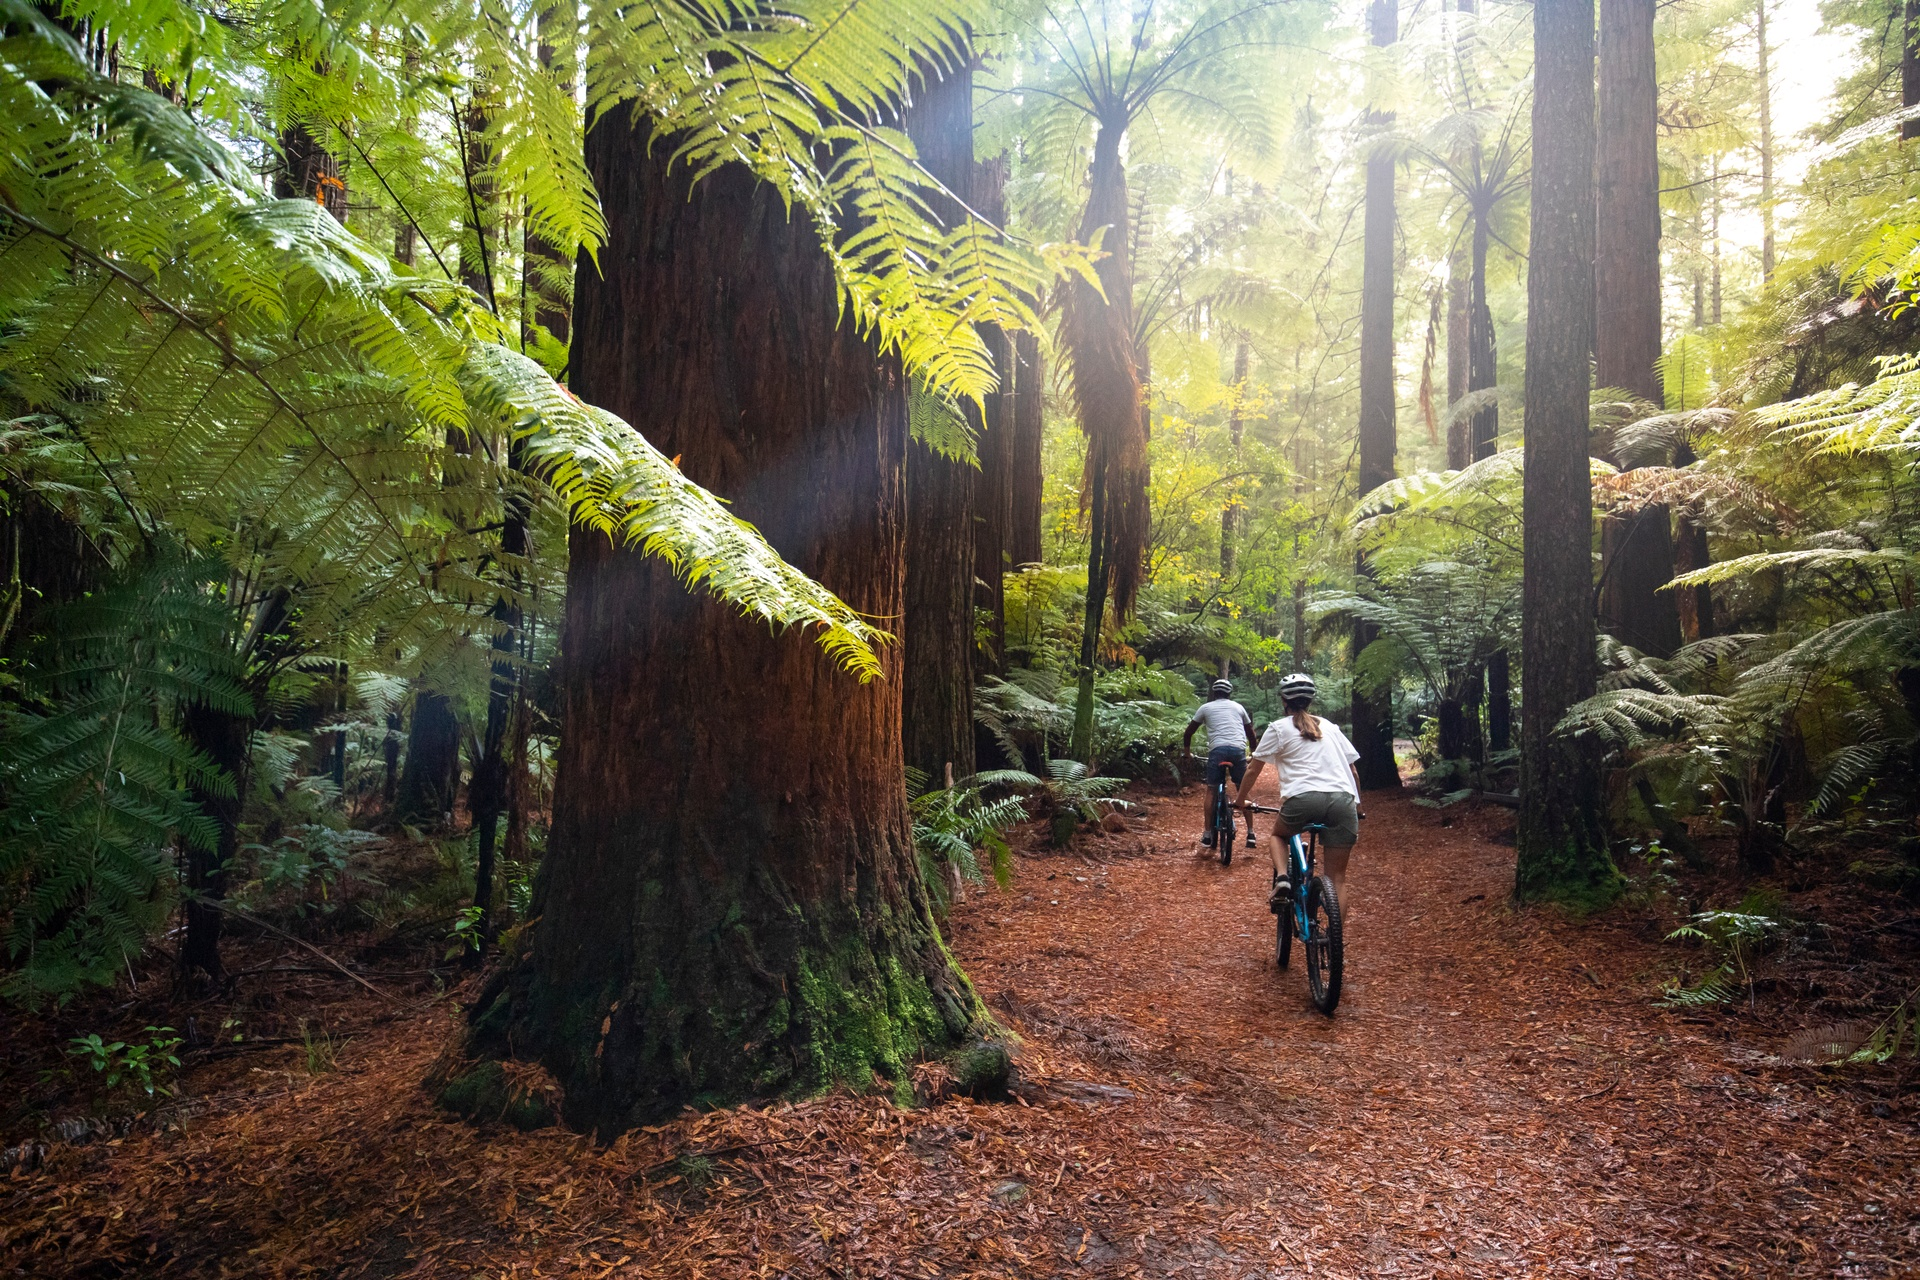 Redwoods Treewalk in Whakarewarewa Forest, New Zealand